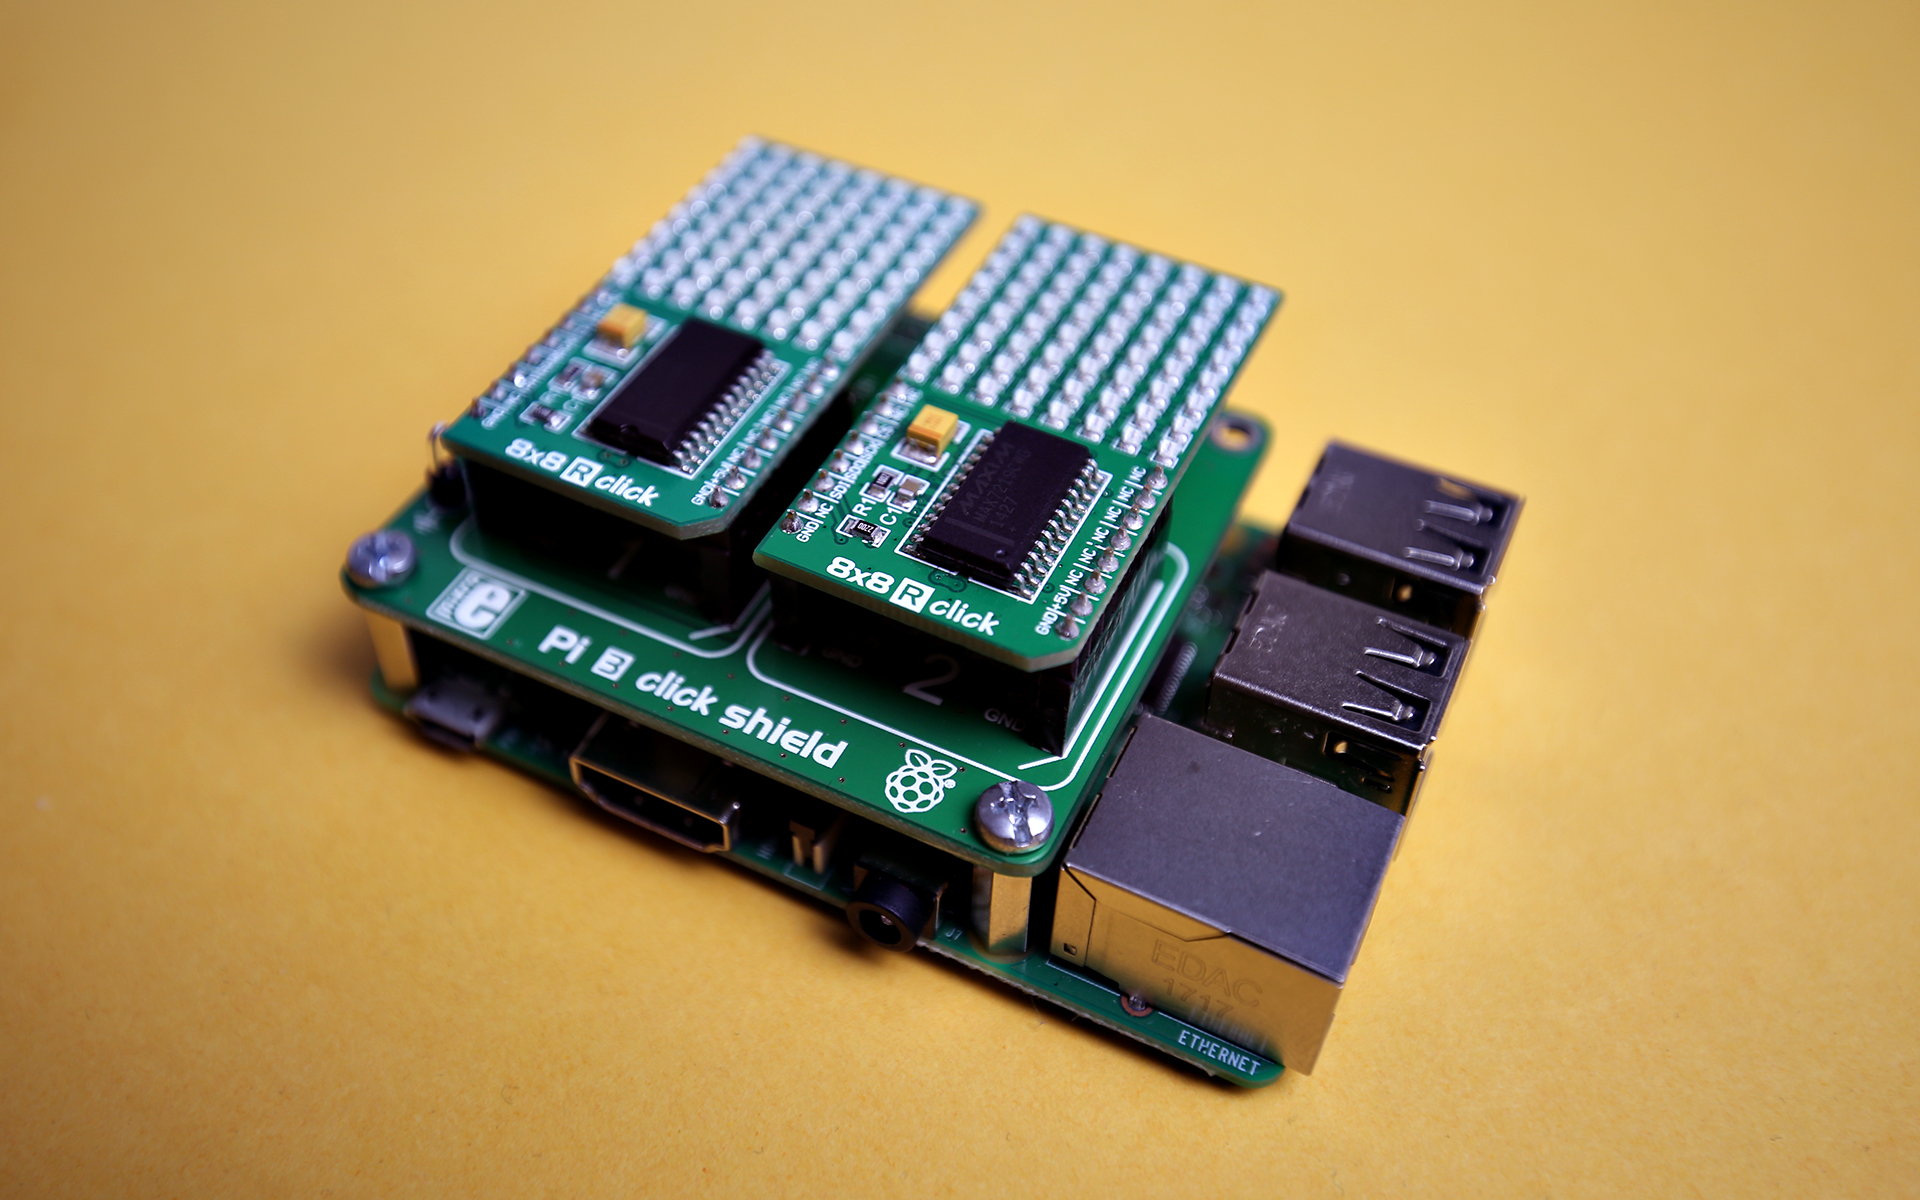 Raspberry Pi Examples With Click Boards Mikroelektronika Bare Circuit Board For The 8051 Development To Demonstrate An Example Of Spi Protocol Used On Weve Plugged Two 88 R